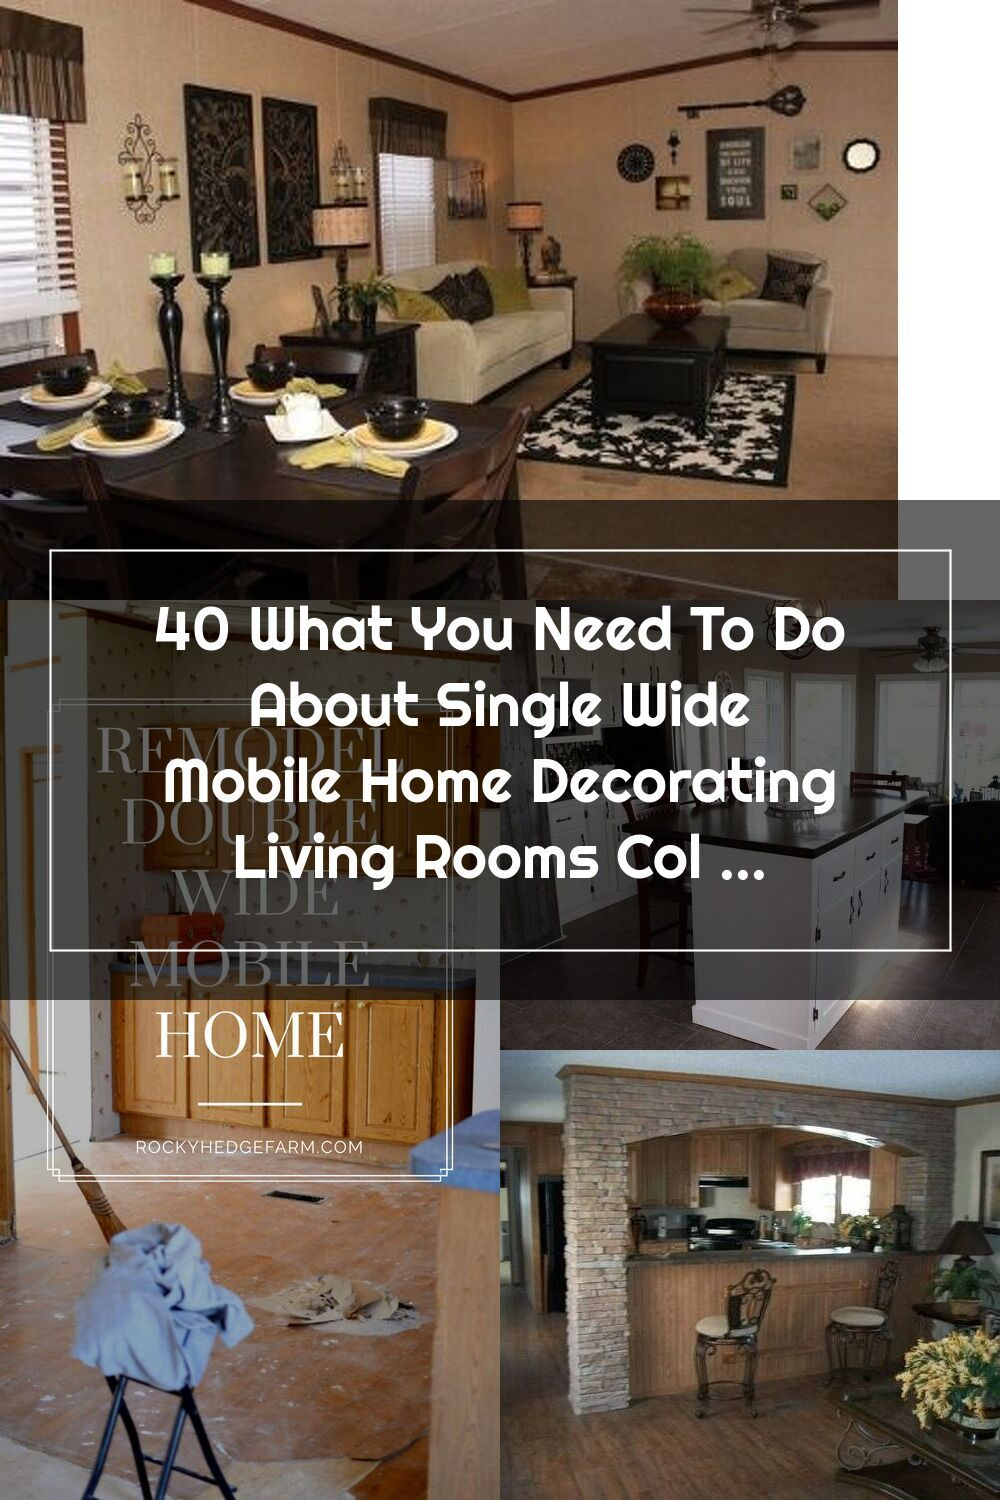 What You Need About Single Wide Mobile Home Decorating Living Rooms Col